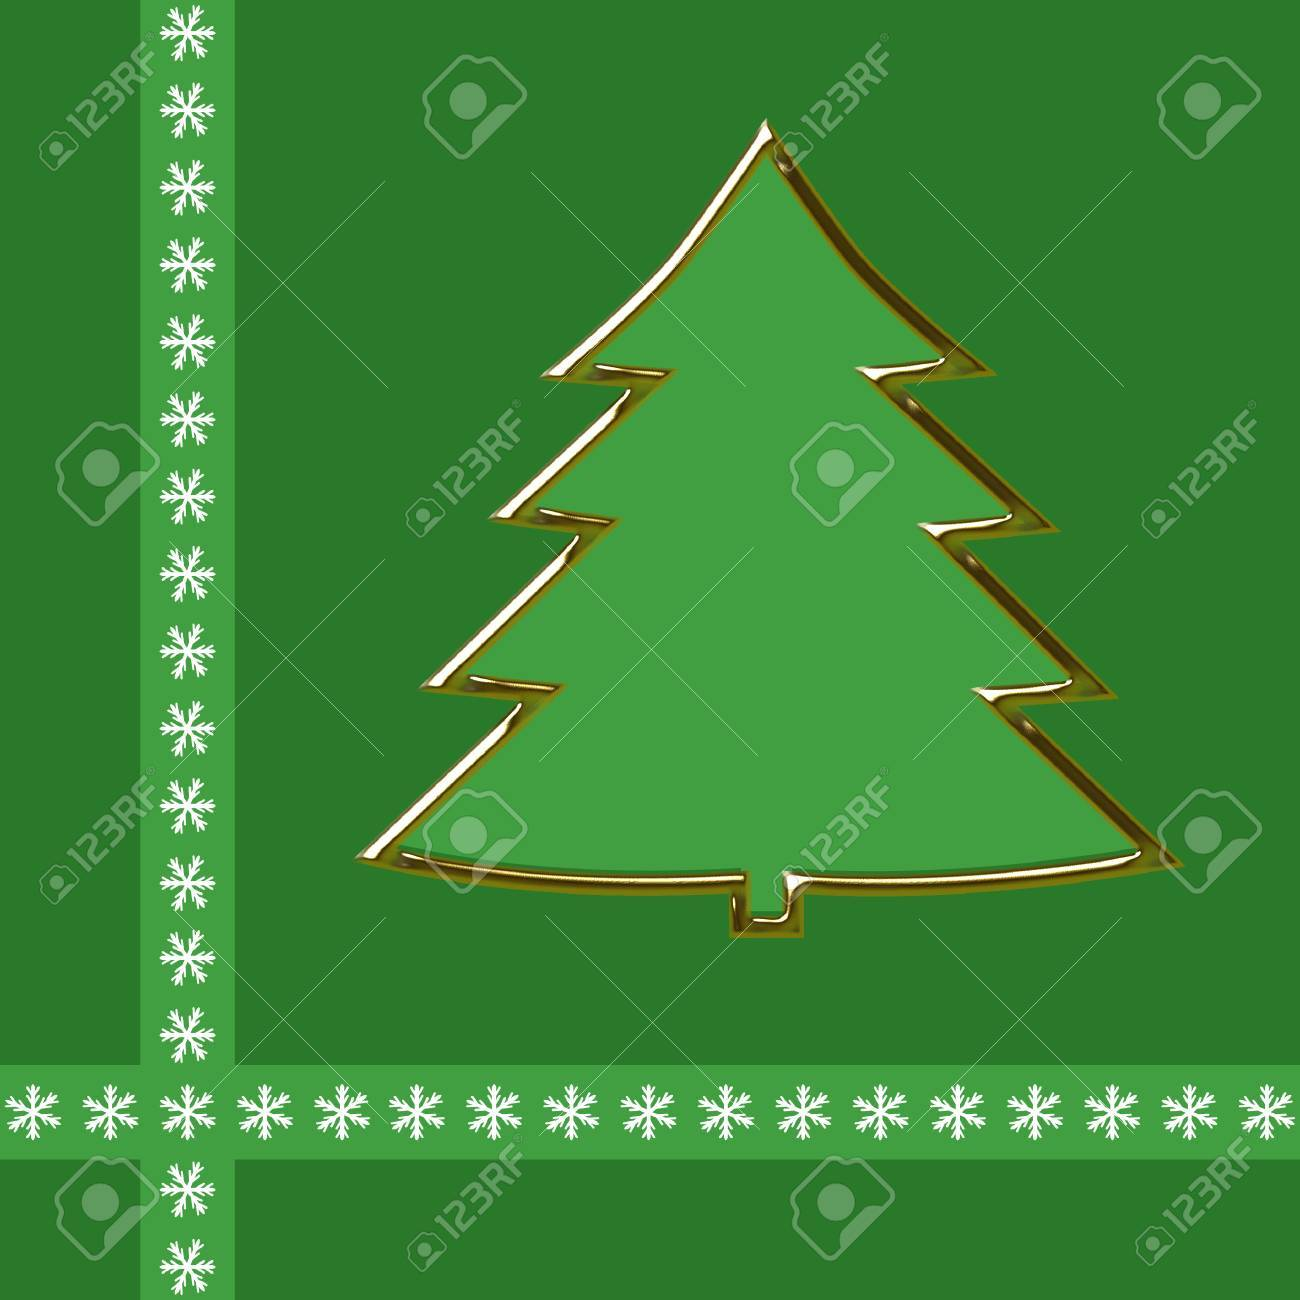 Outline Of Golden Christmas Tree On Green Background And An Edging Snowflakes Stock Photo